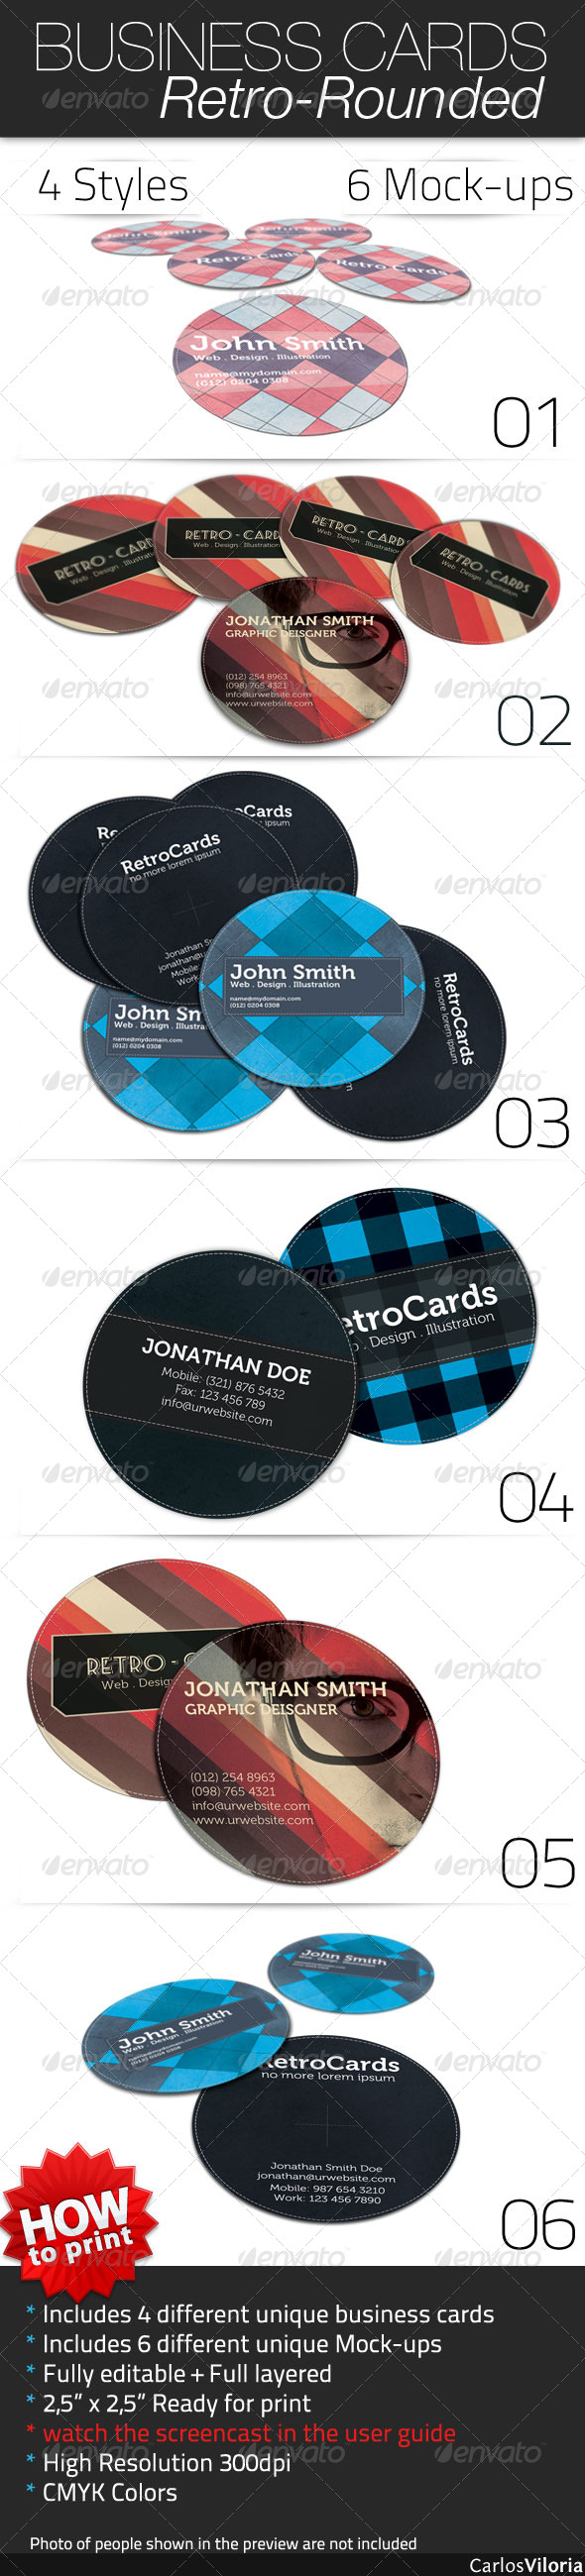 Business Card - Retro Rounded - Retro/Vintage Business Cards